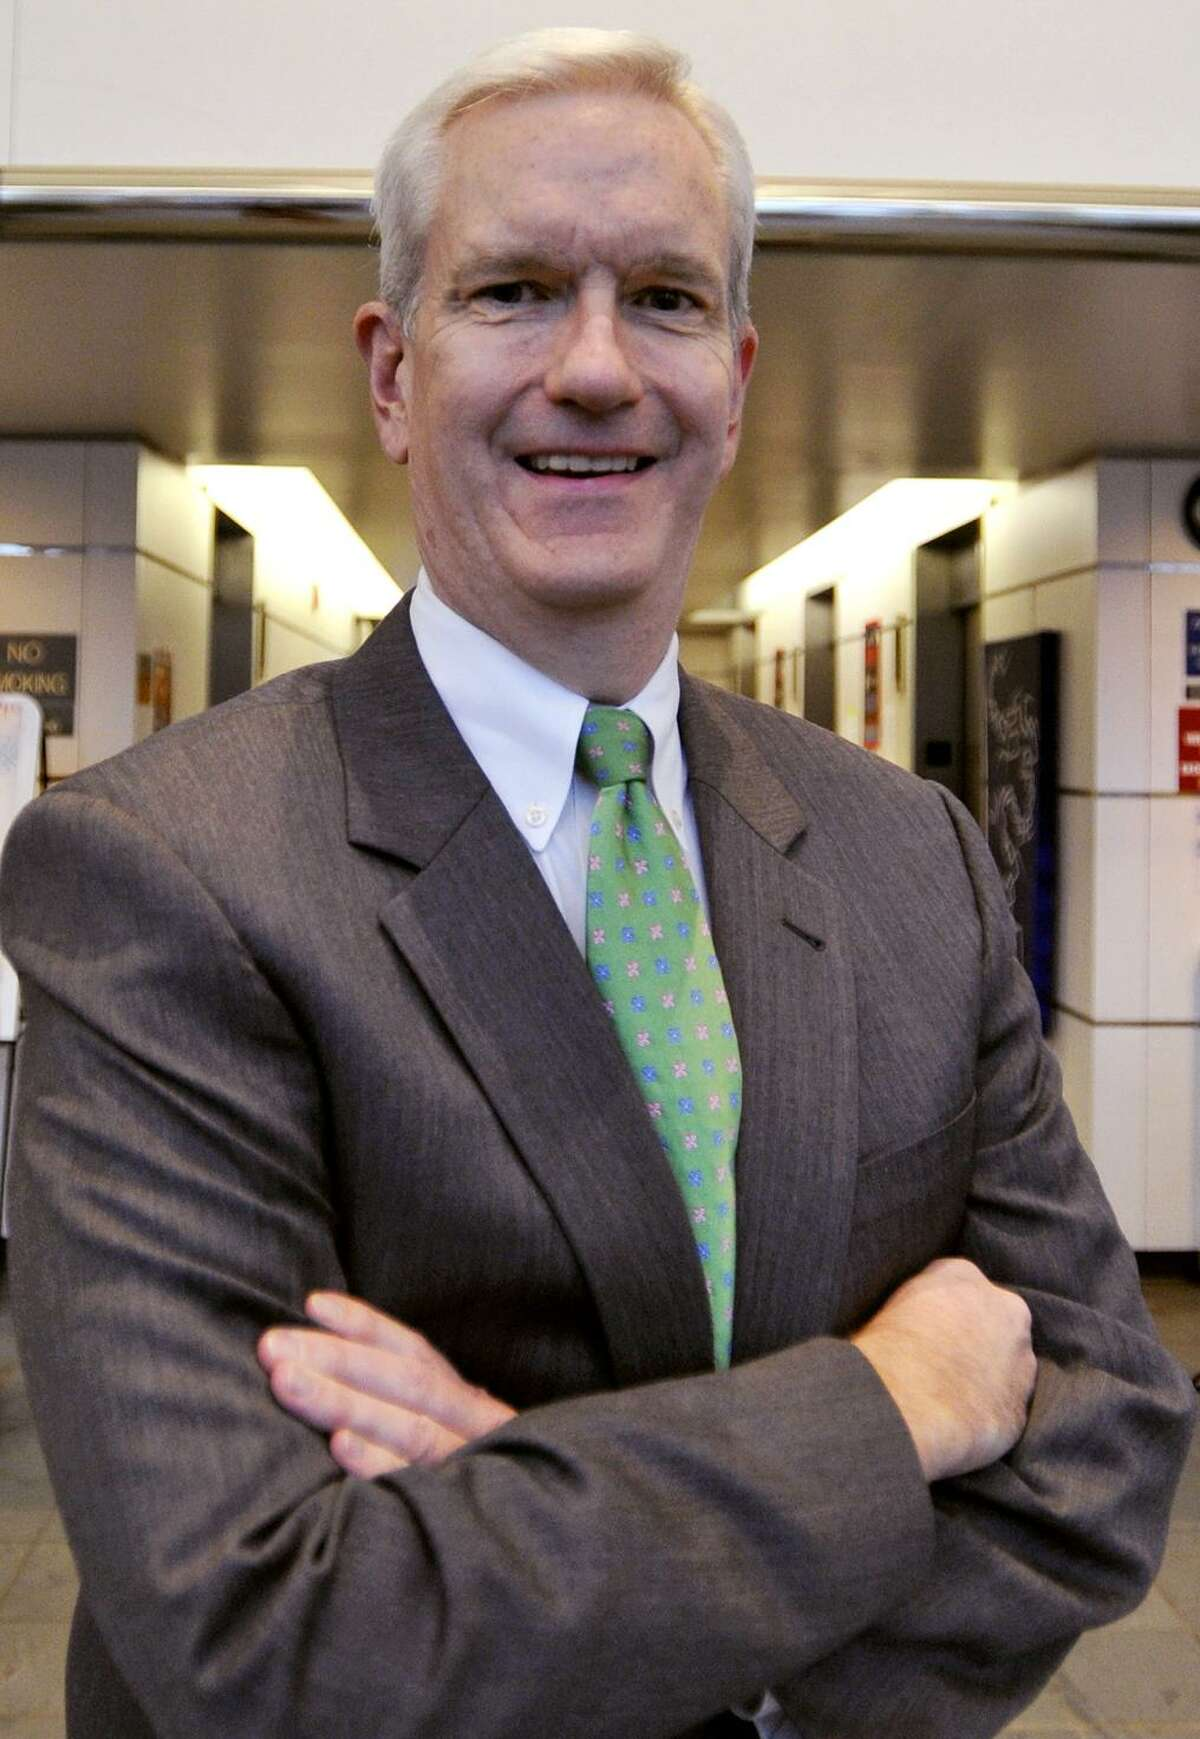 """Connecticut Supreme Court Justice Andrew McDonald will speak to the Greenwich Retired Men's Association on """"Judicial Independence"""" on Sept. 26. The RMA offers a free program every Wednesday that is open to the public; no reservations are required. Social break starts at 10:40 a.m., followed by the speaker at 11 a.m. Held at the First Presbyterian Church, 1 W. Putnam Ave., Greenwich. For info, visit www.greenwichrma.org or contact info@greenwichrma.org."""